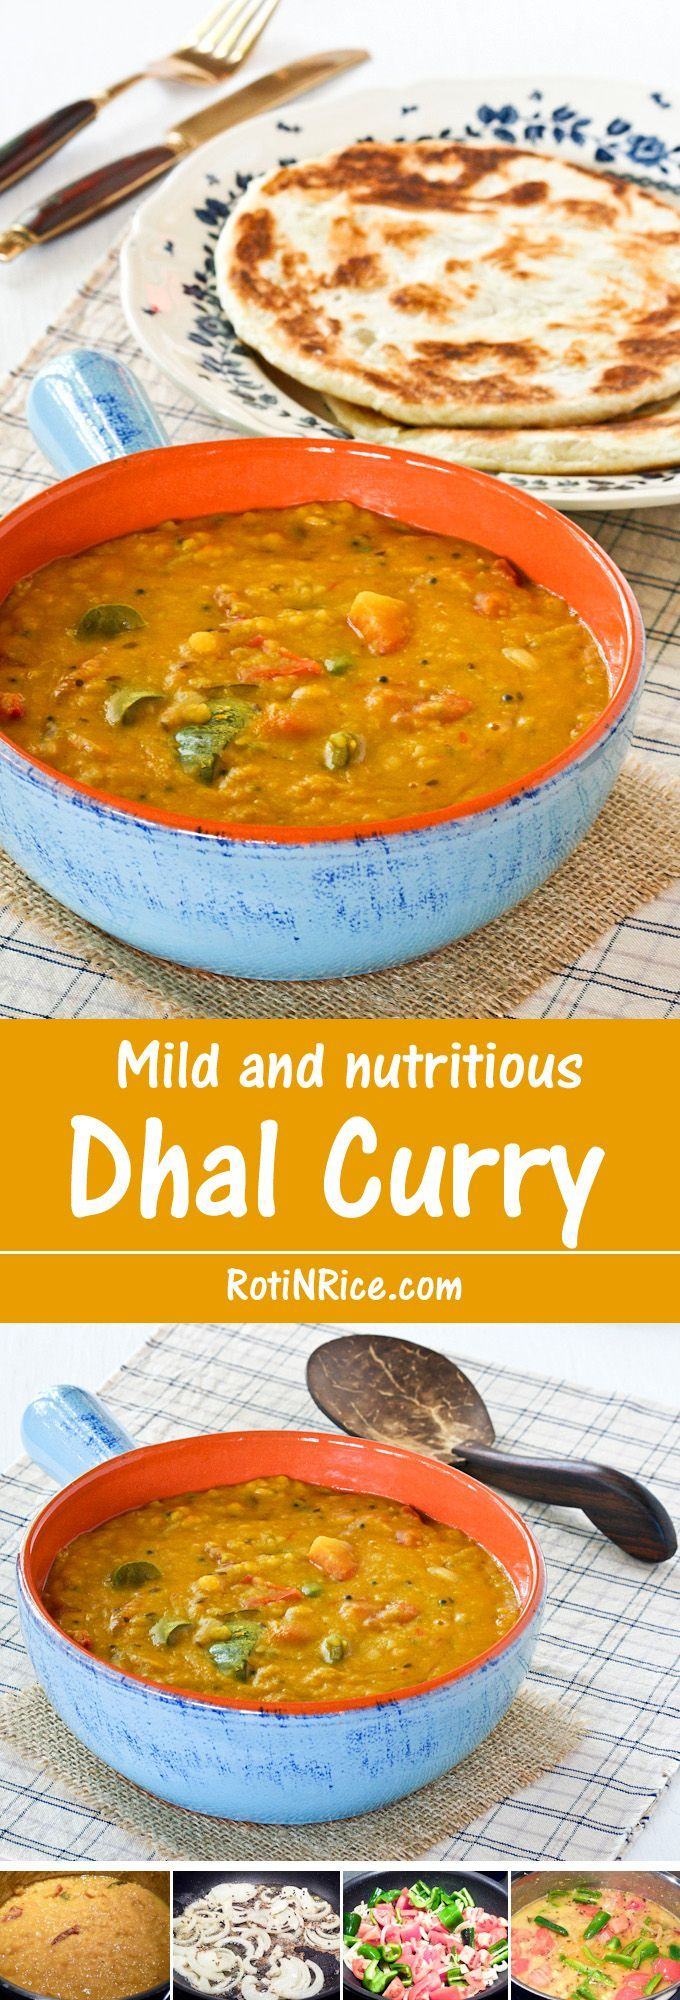 This Dhal Curry is a very mild and nutritious curry made up mainly of lentils, tomatoes, chilies, and spices. Heat level can be adjusted according to taste. | http://RotiNRice.com